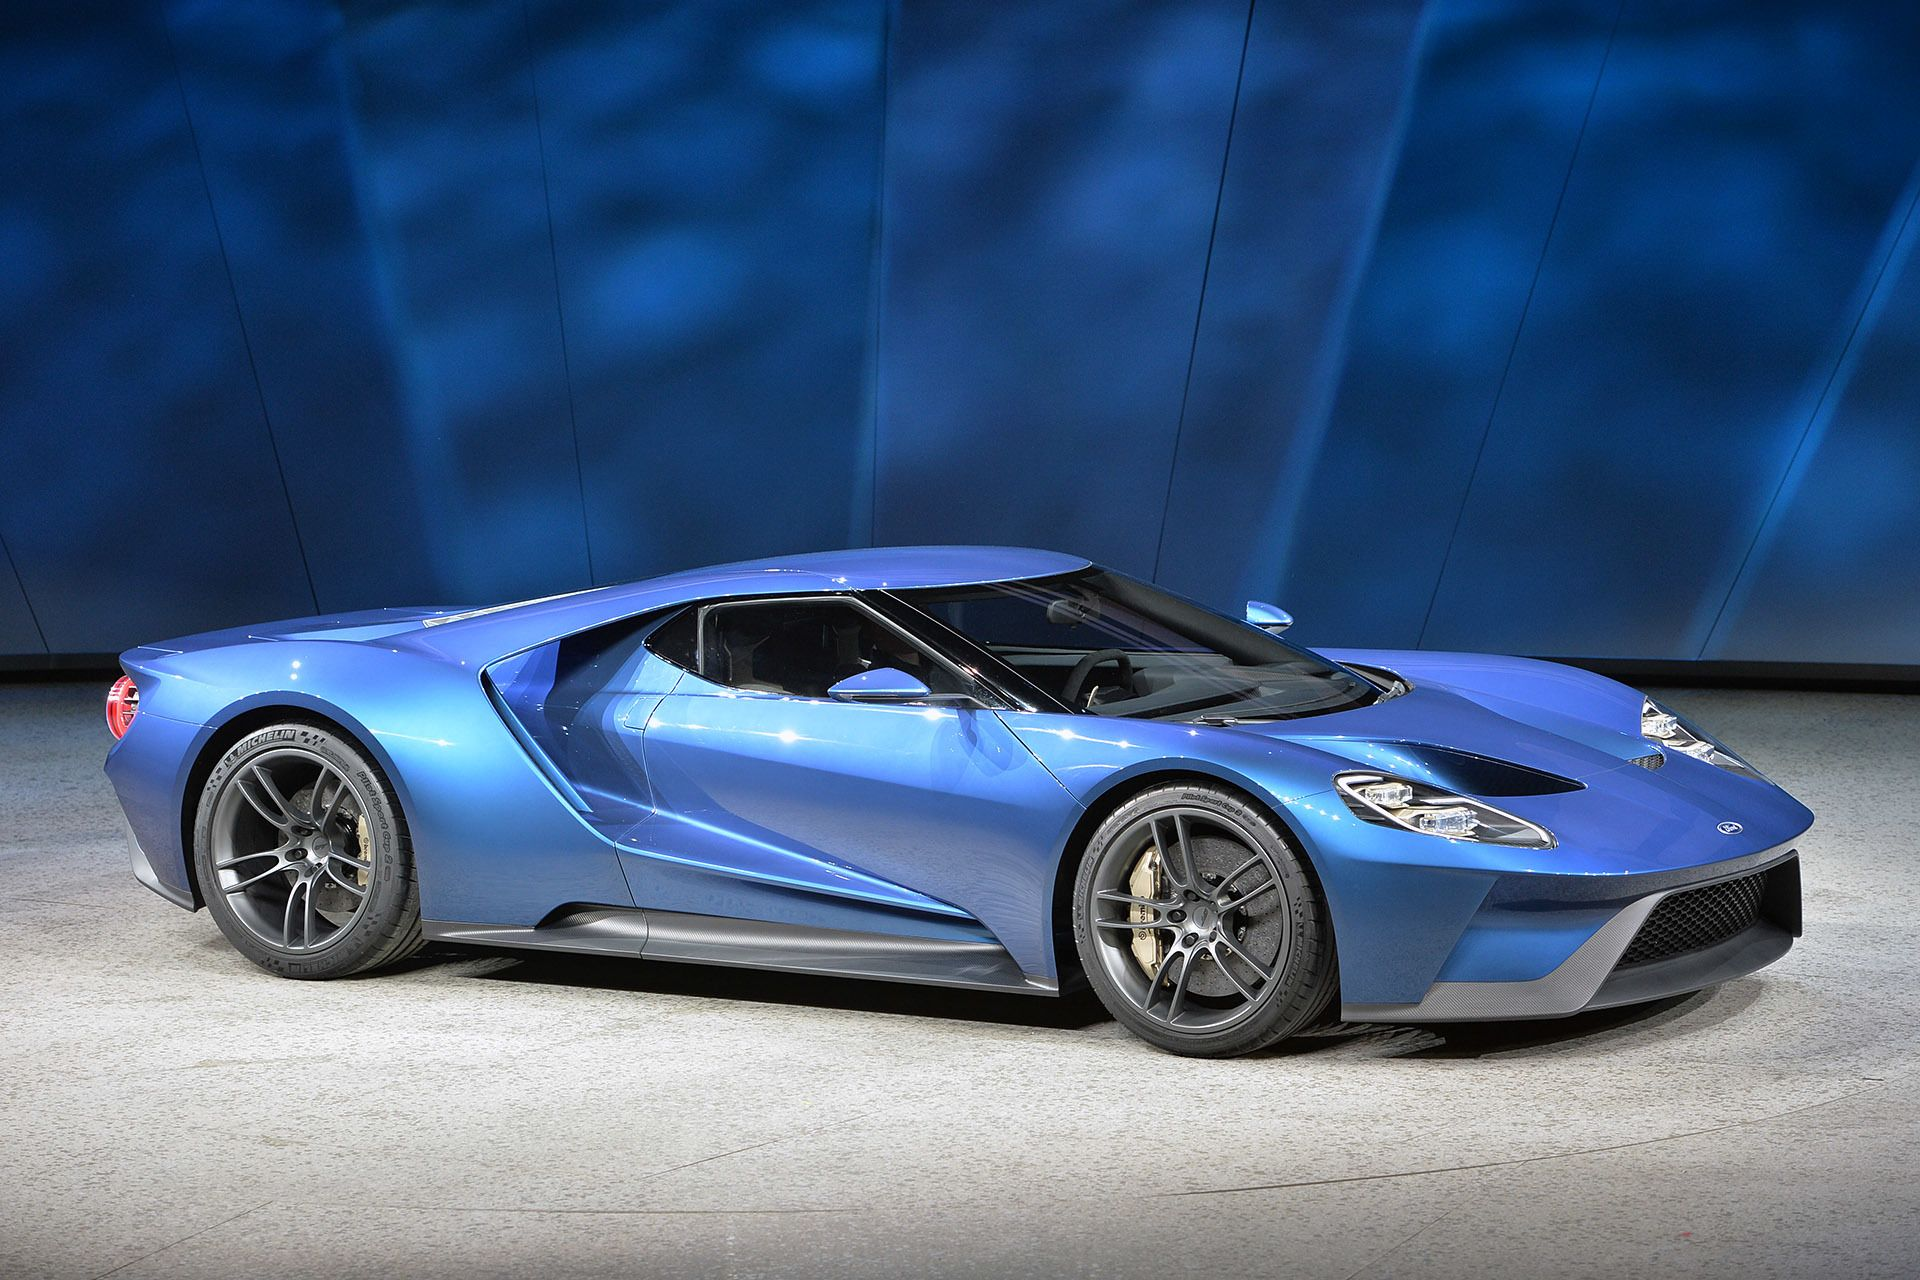 The Ford Gt Concept Takes Its Place Of Honor On The Cover Of The Upcoming Release Of Forza Motorsport  For Xbox One